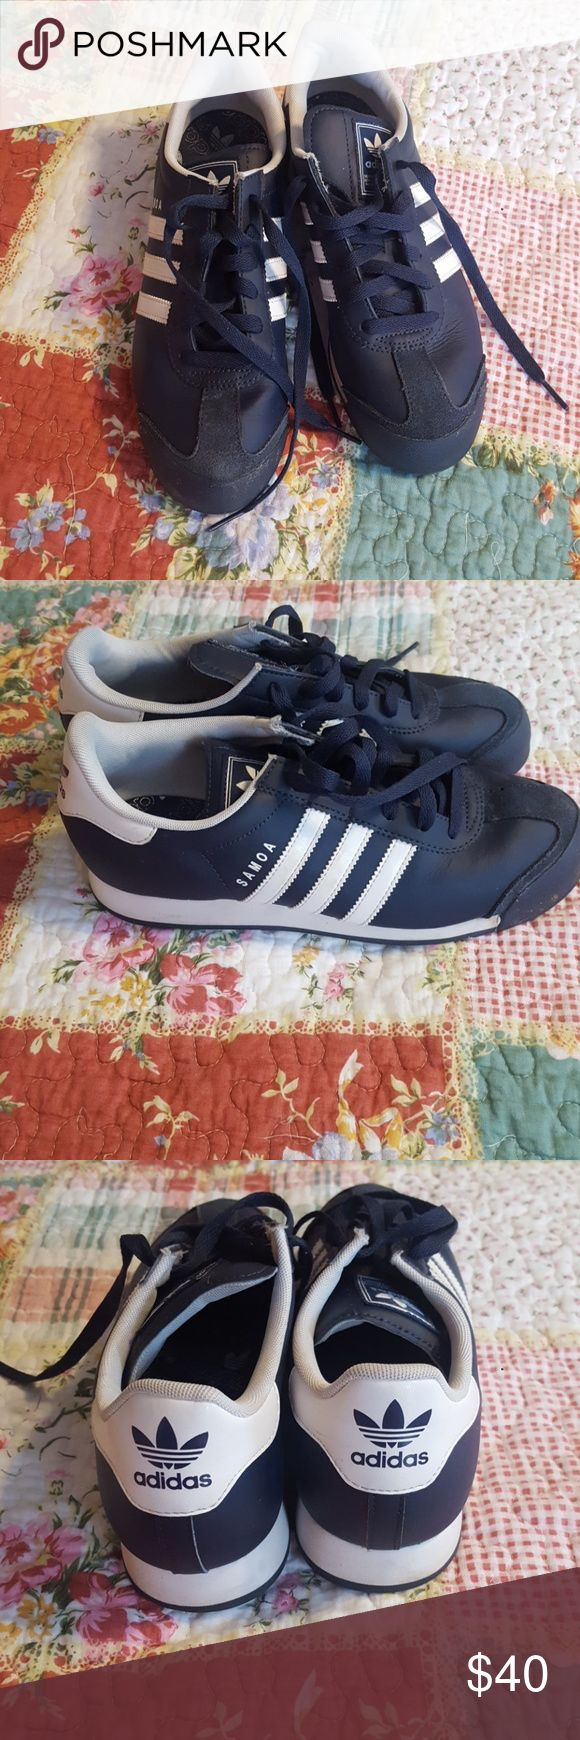 Adidas tennis shoes Adidas tennis shoes only worn a few times really good condition. adidas Shoes Sneakers